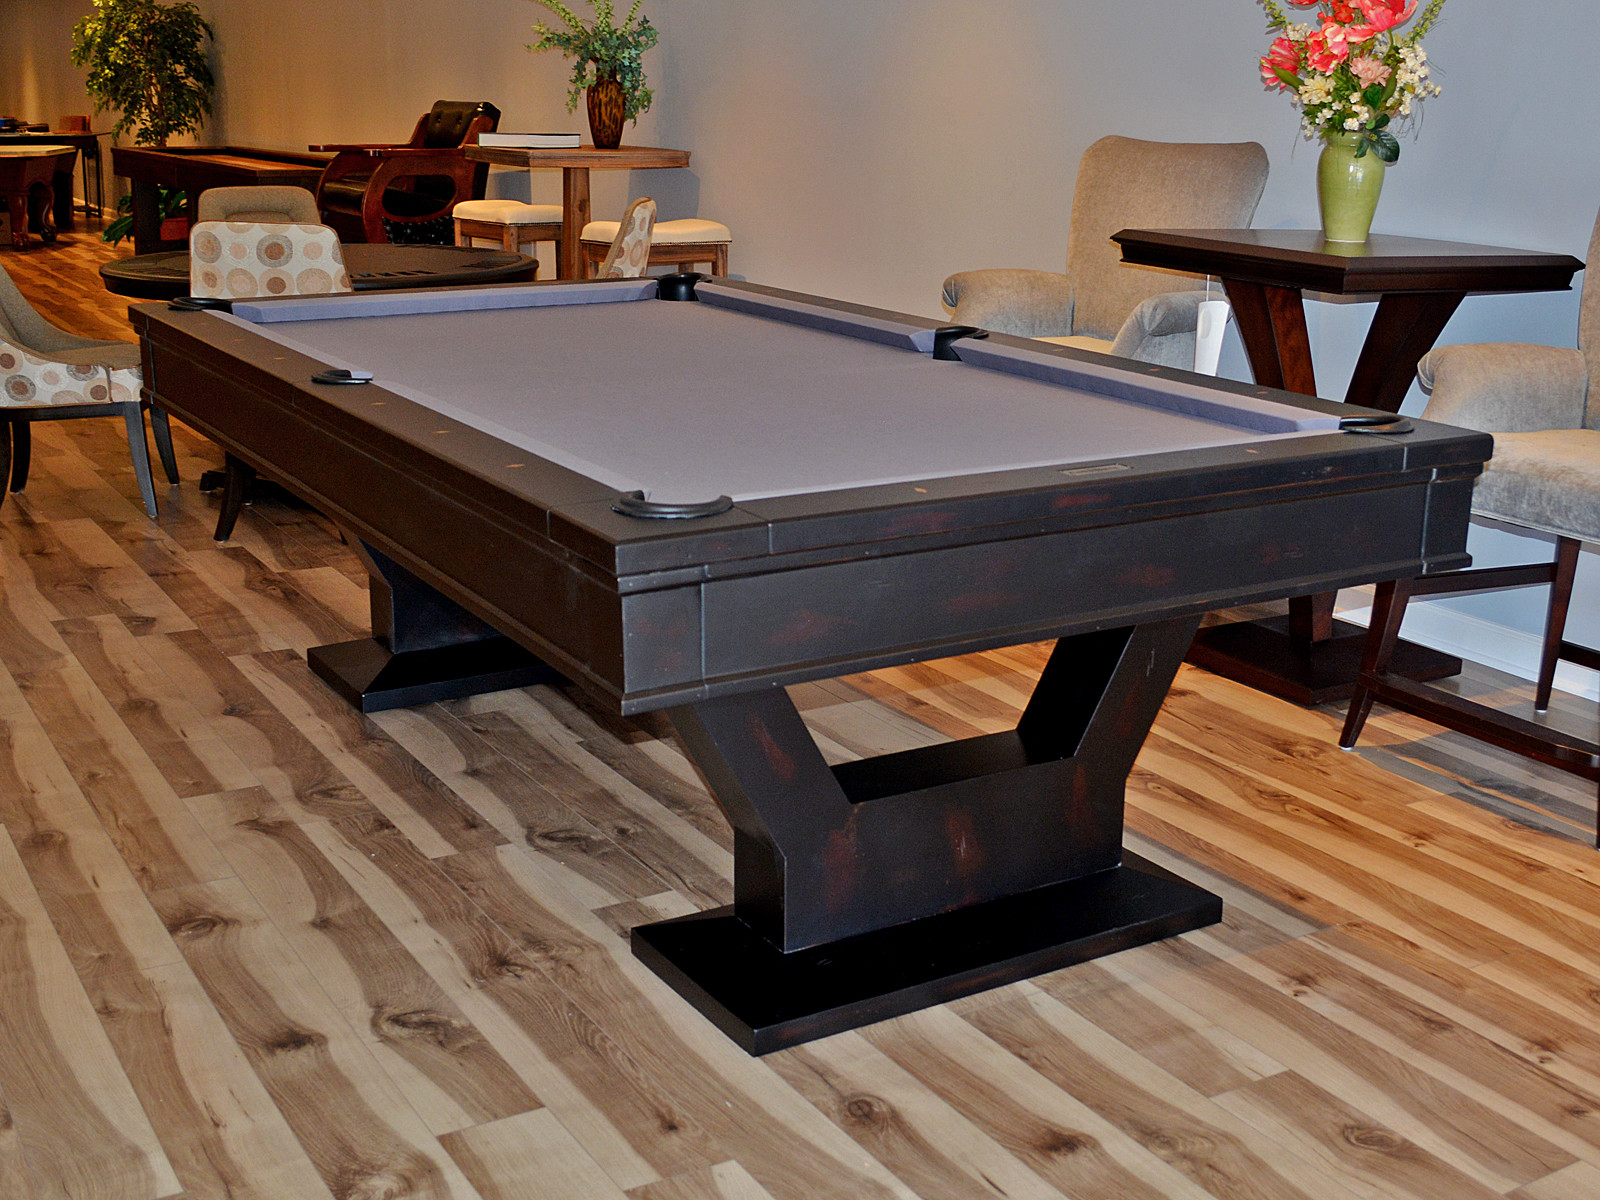 Olhausen Pool Table Olhausen Pool Tables Prices Olhausen Pool Table Prices Looku Billiard